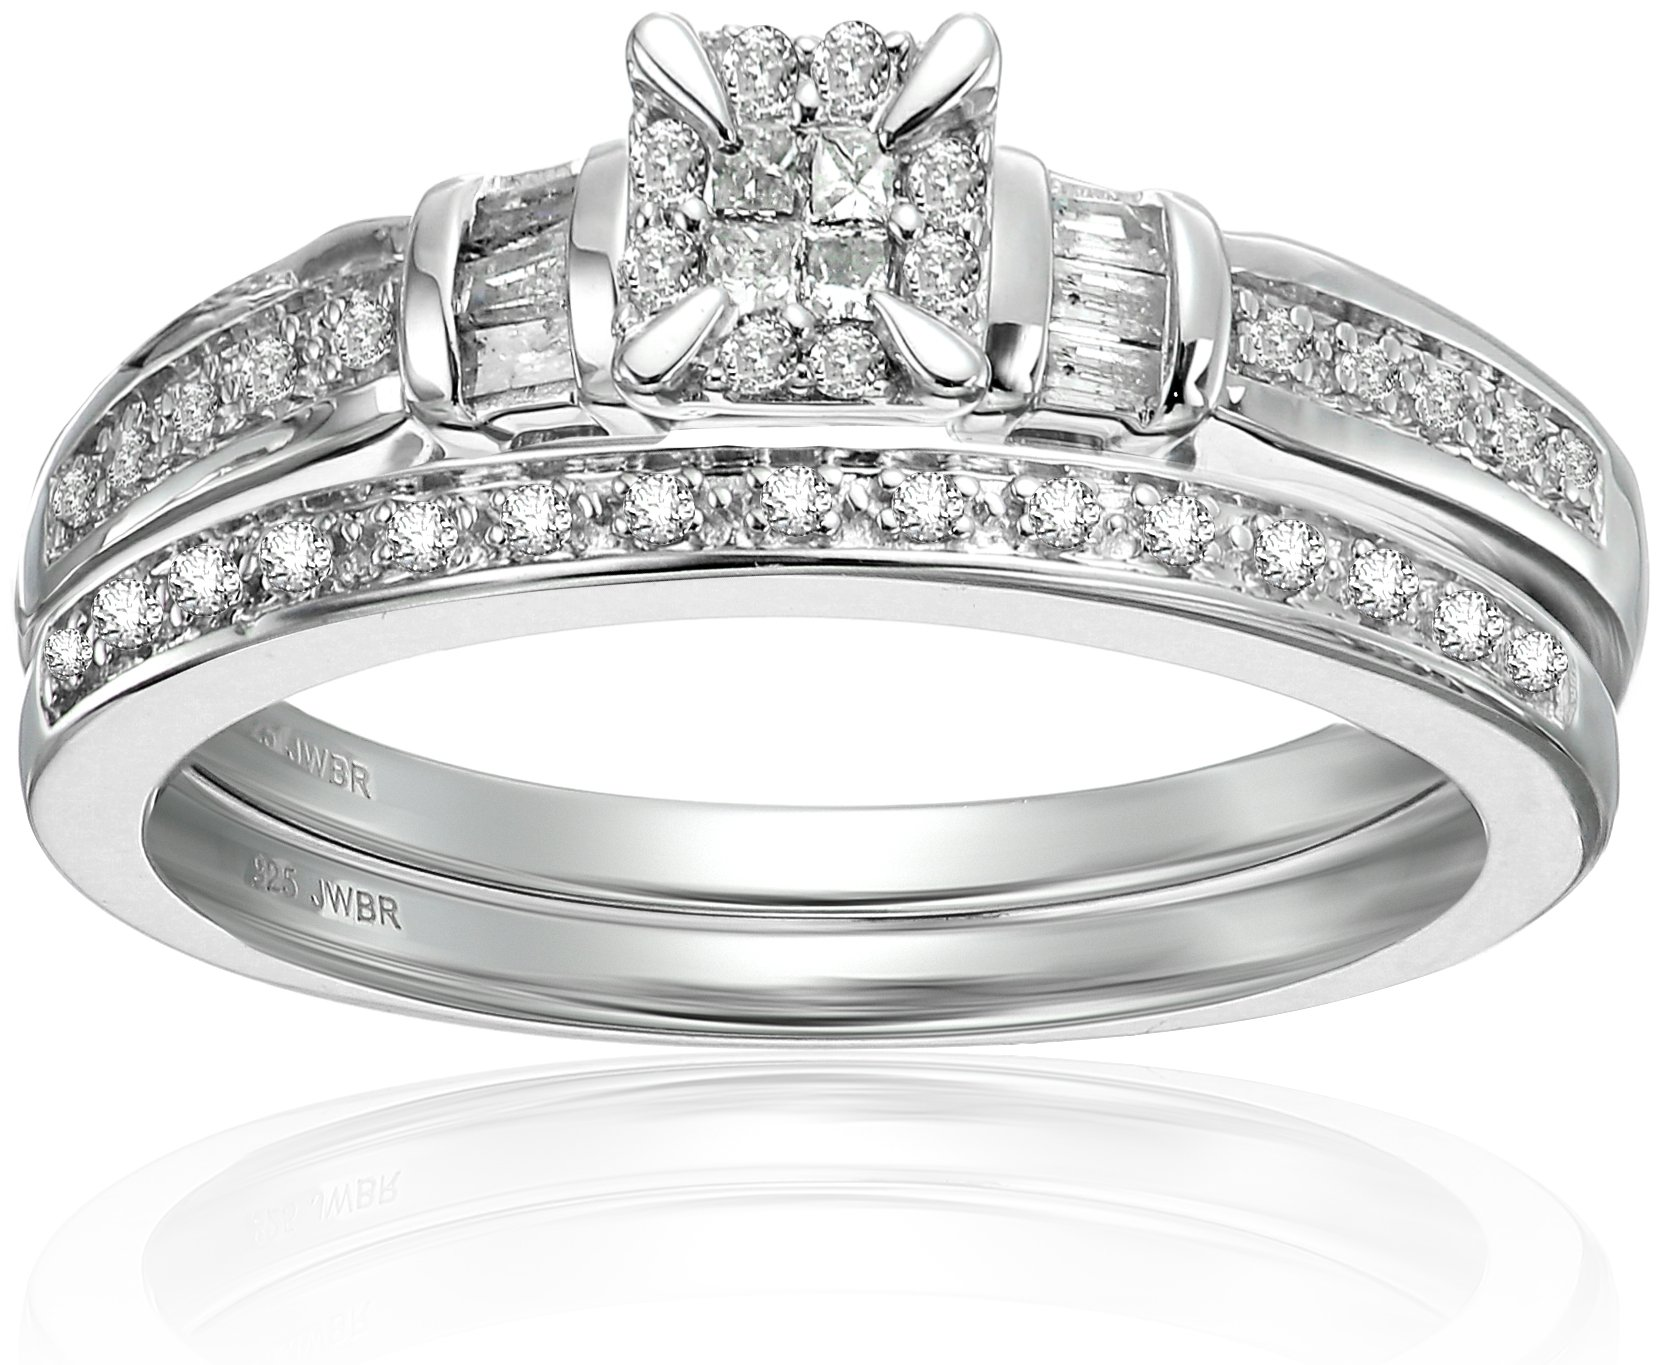 Sterling silver Diamond Square Cluster Bridal Ring, Size 7 (1/4cttw)